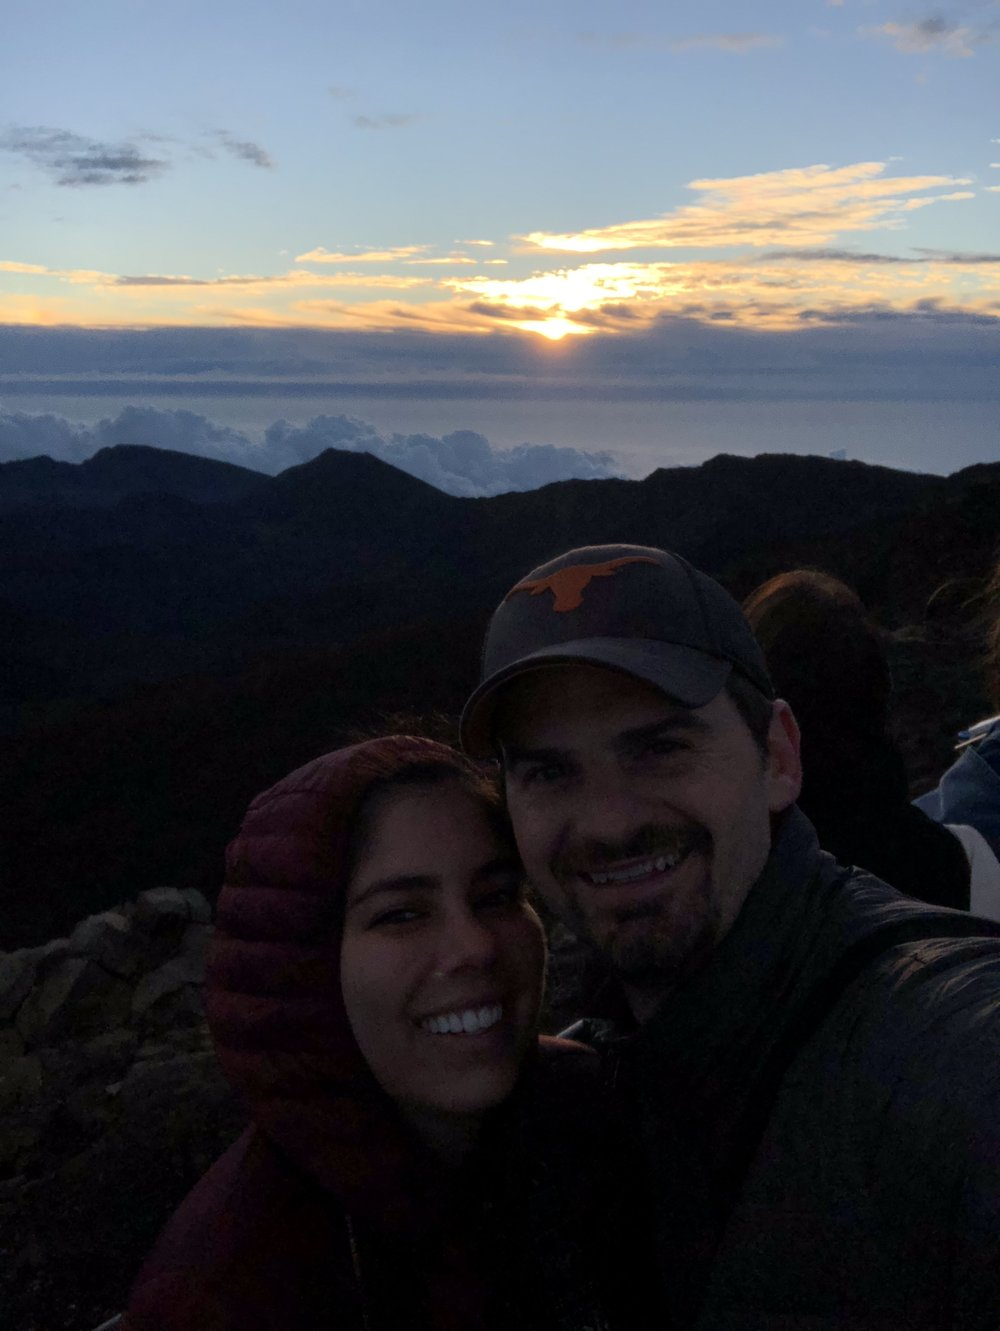 Couple bundles up to make it to sunrise at Haleakala Crater in Maui, Hawaii